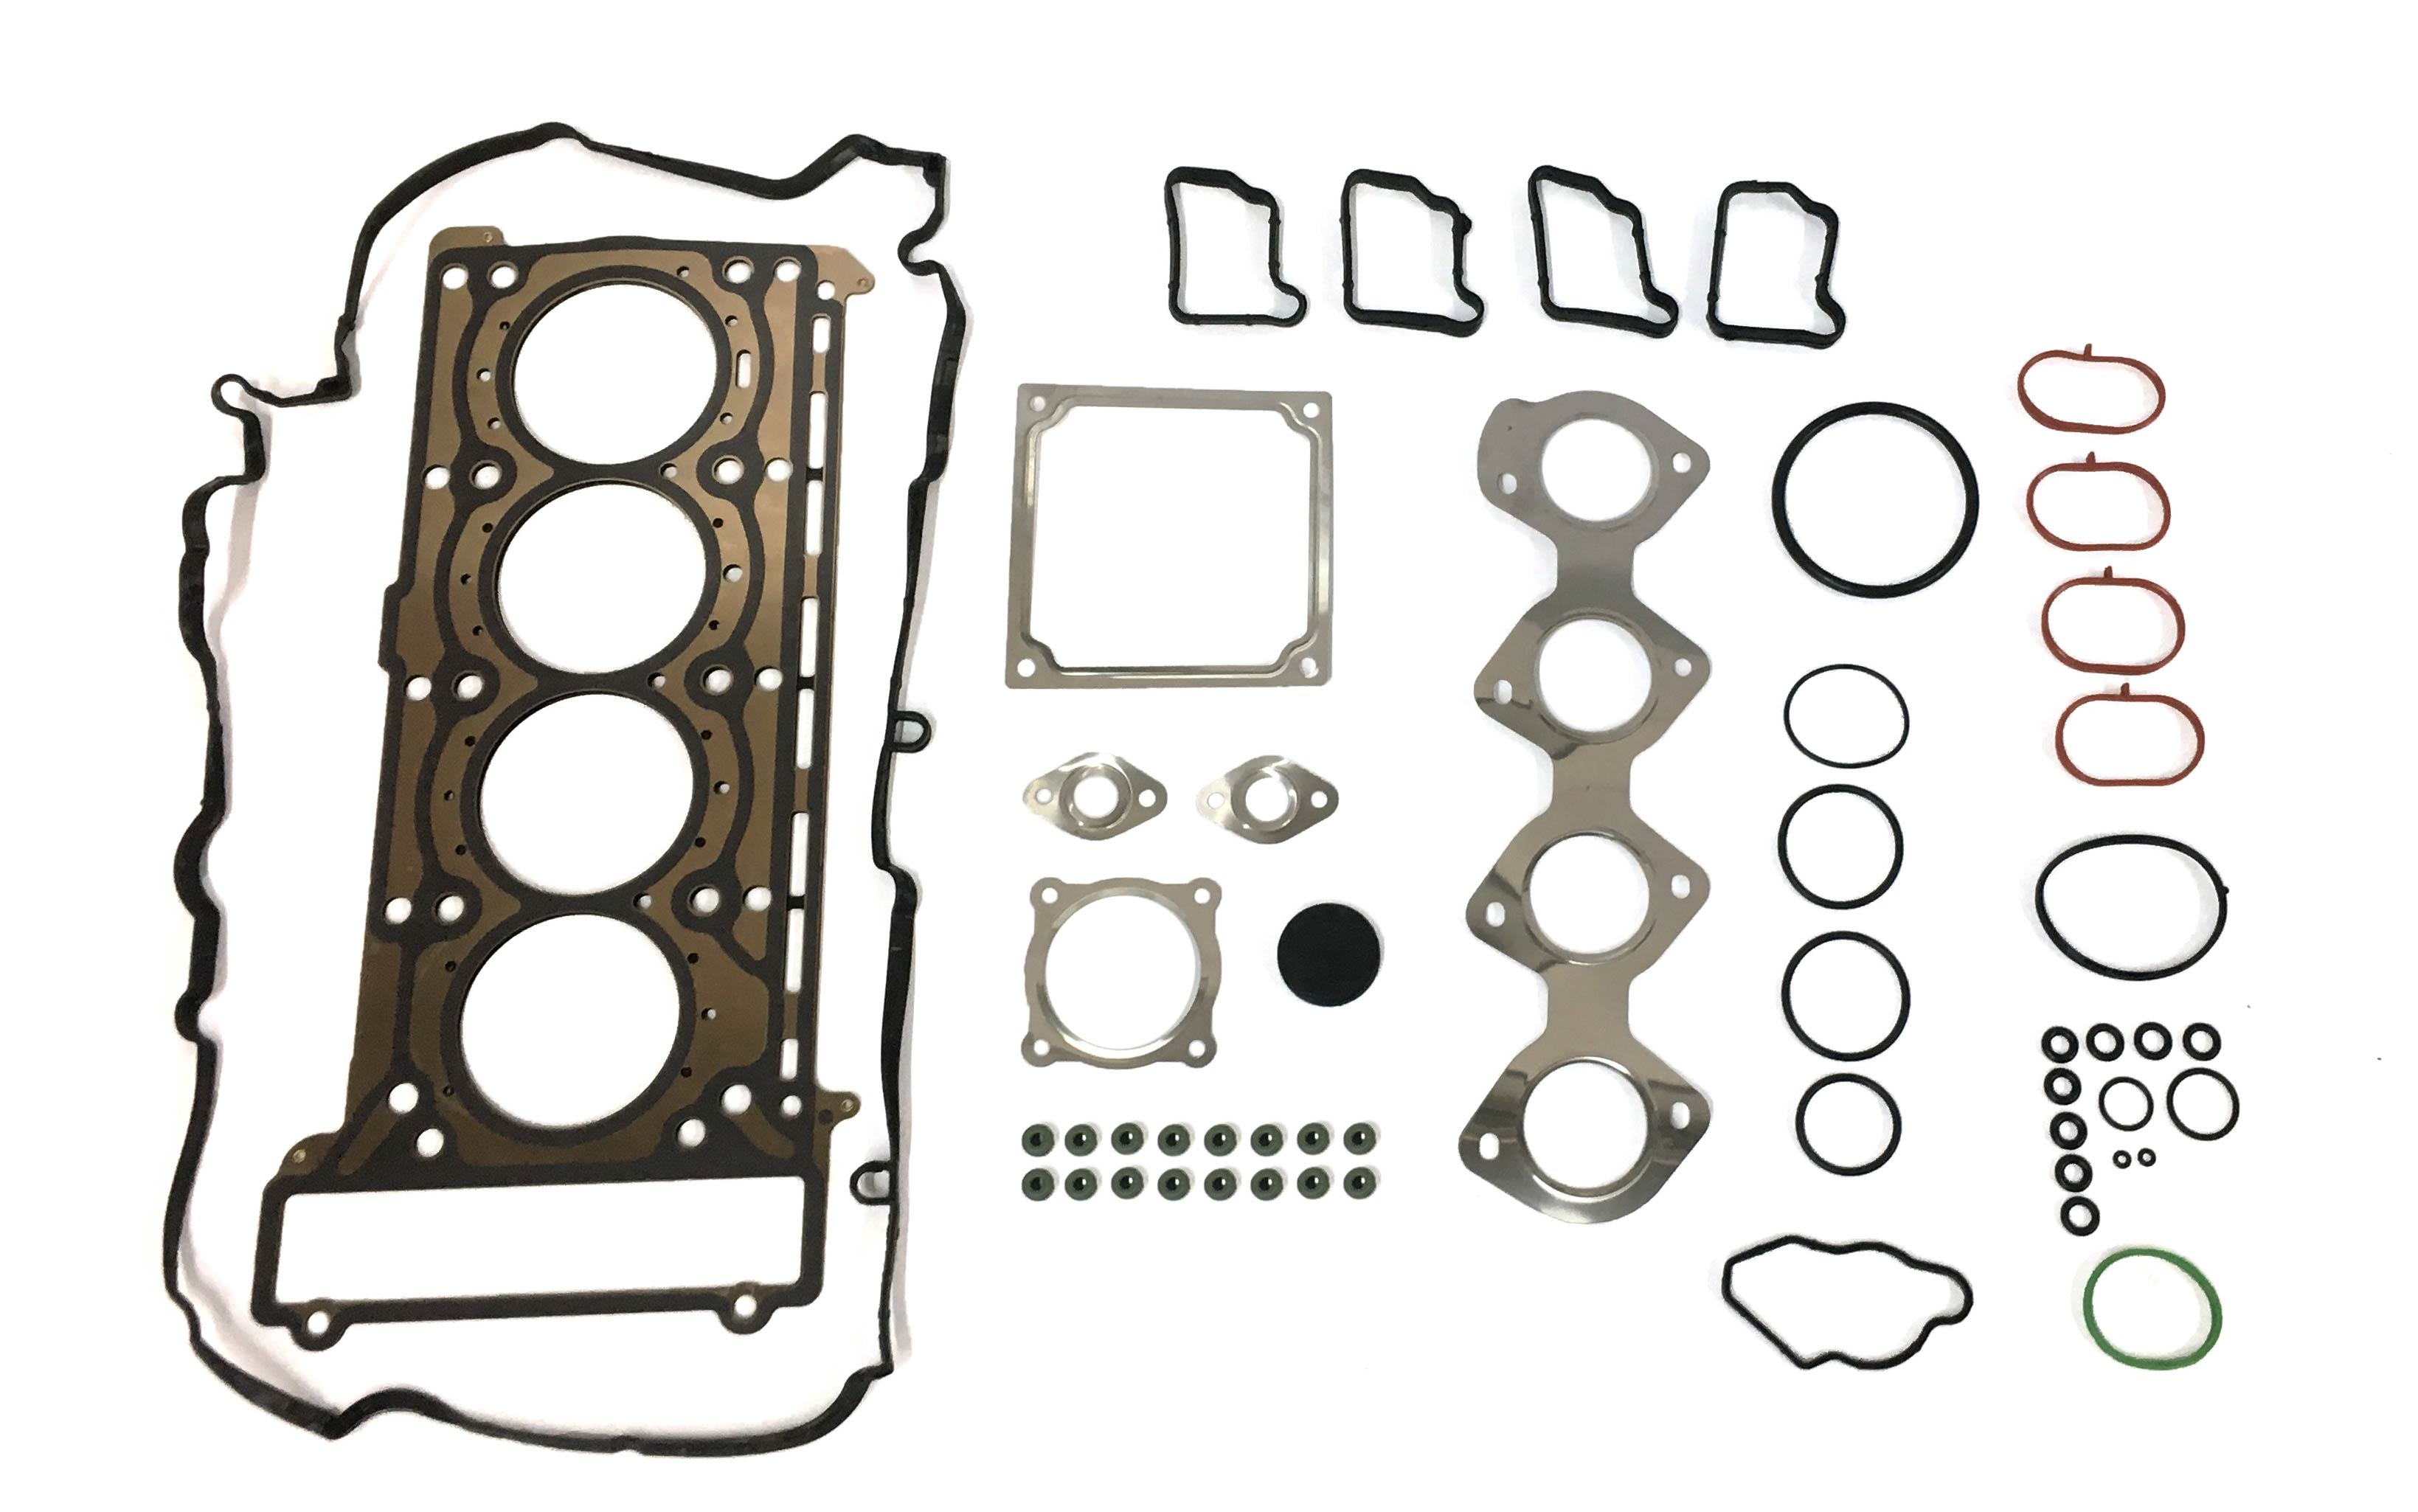 Gasket set cylinder head gasket Mercedes-Benz of 1.8 271.940 271.944 NEW